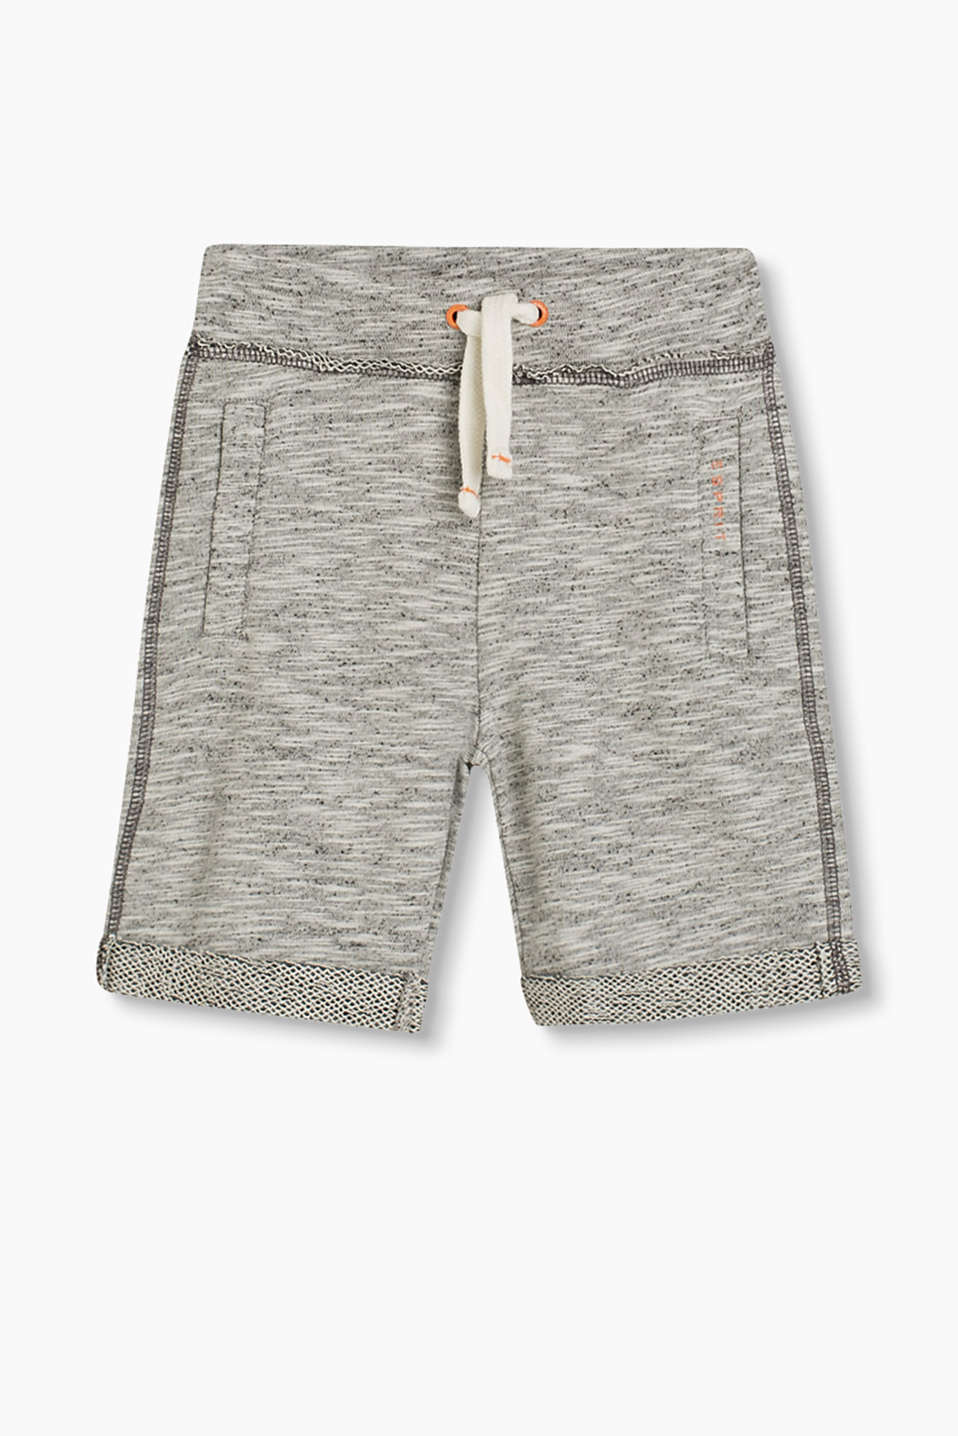 Sweatshirt shorts in a melange finish with an attached turn-down waistband